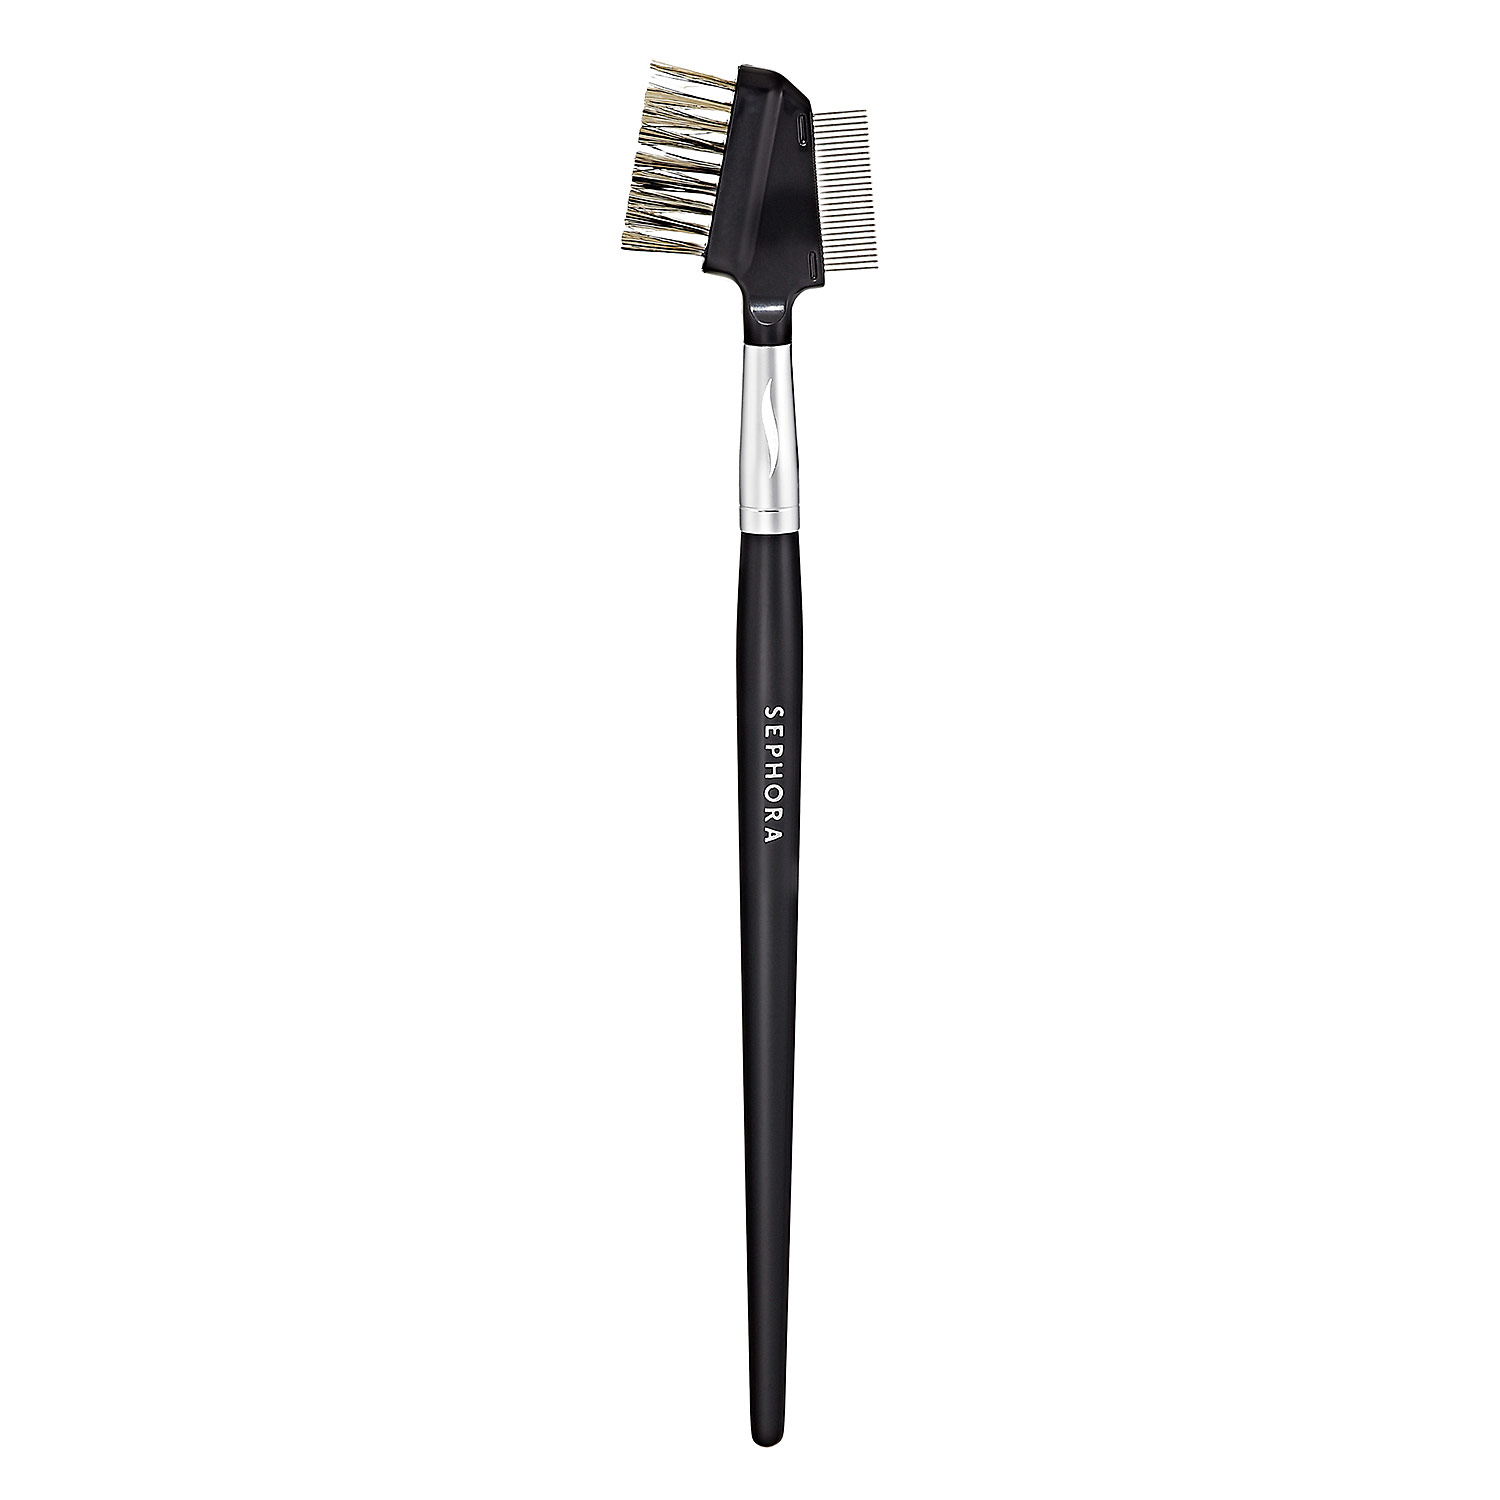 Brow Brush and Comb